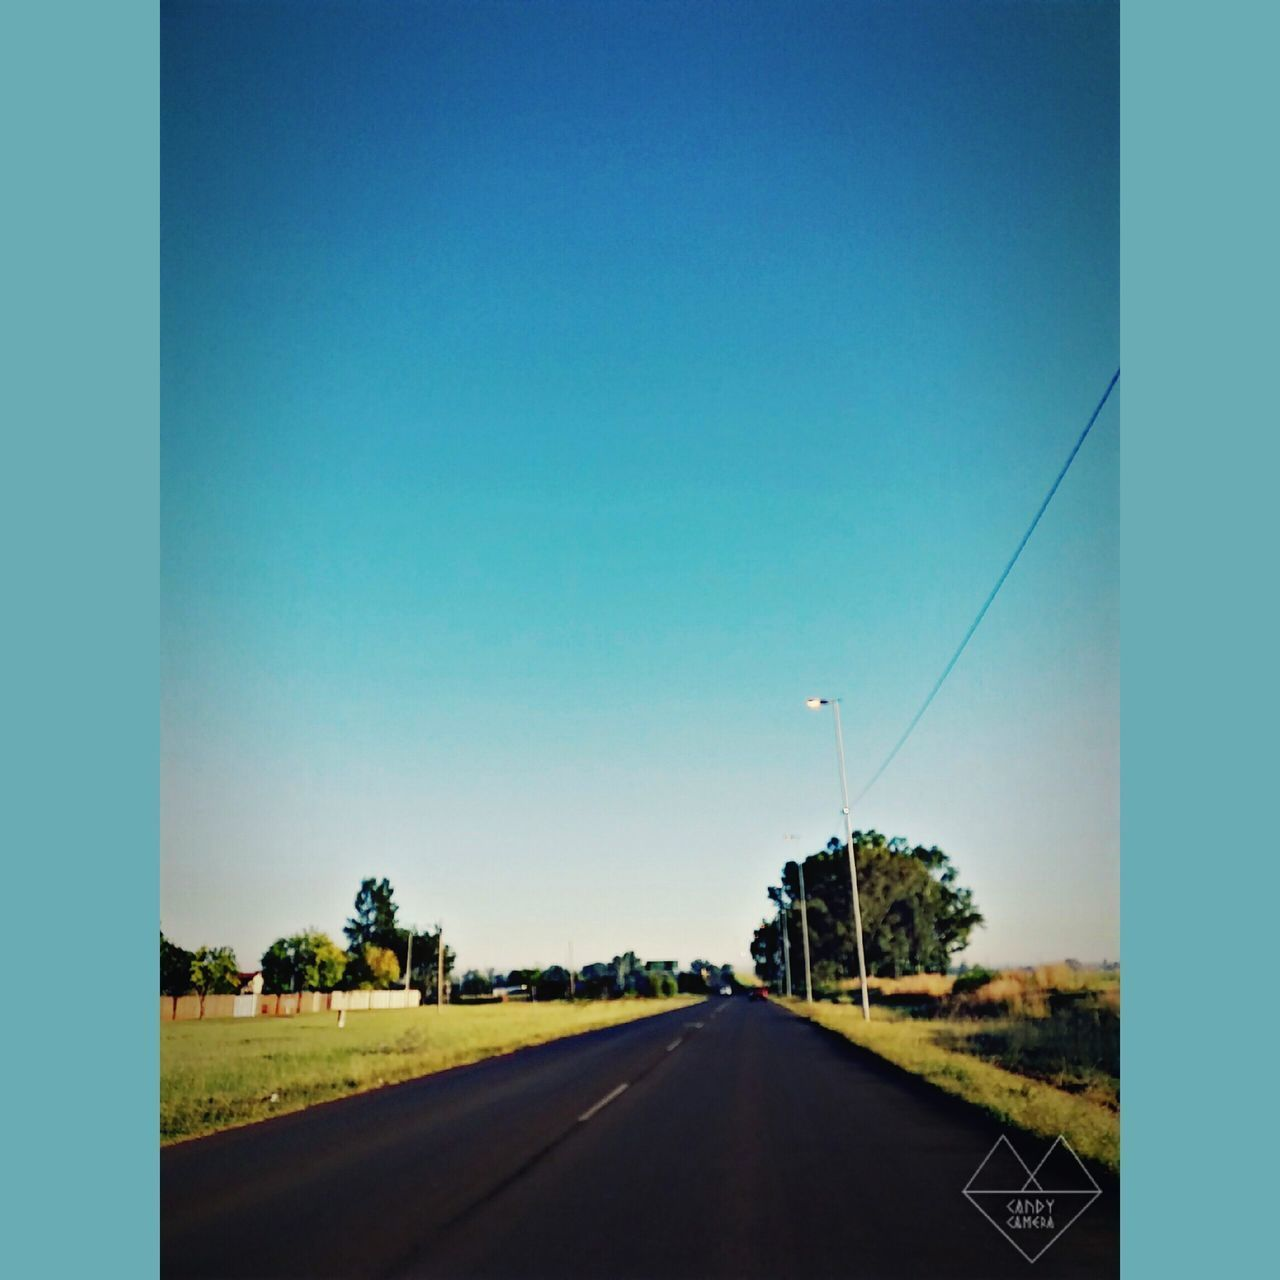 road, clear sky, the way forward, transportation, tree, blue, day, no people, nature, outdoors, landscape, grass, sky